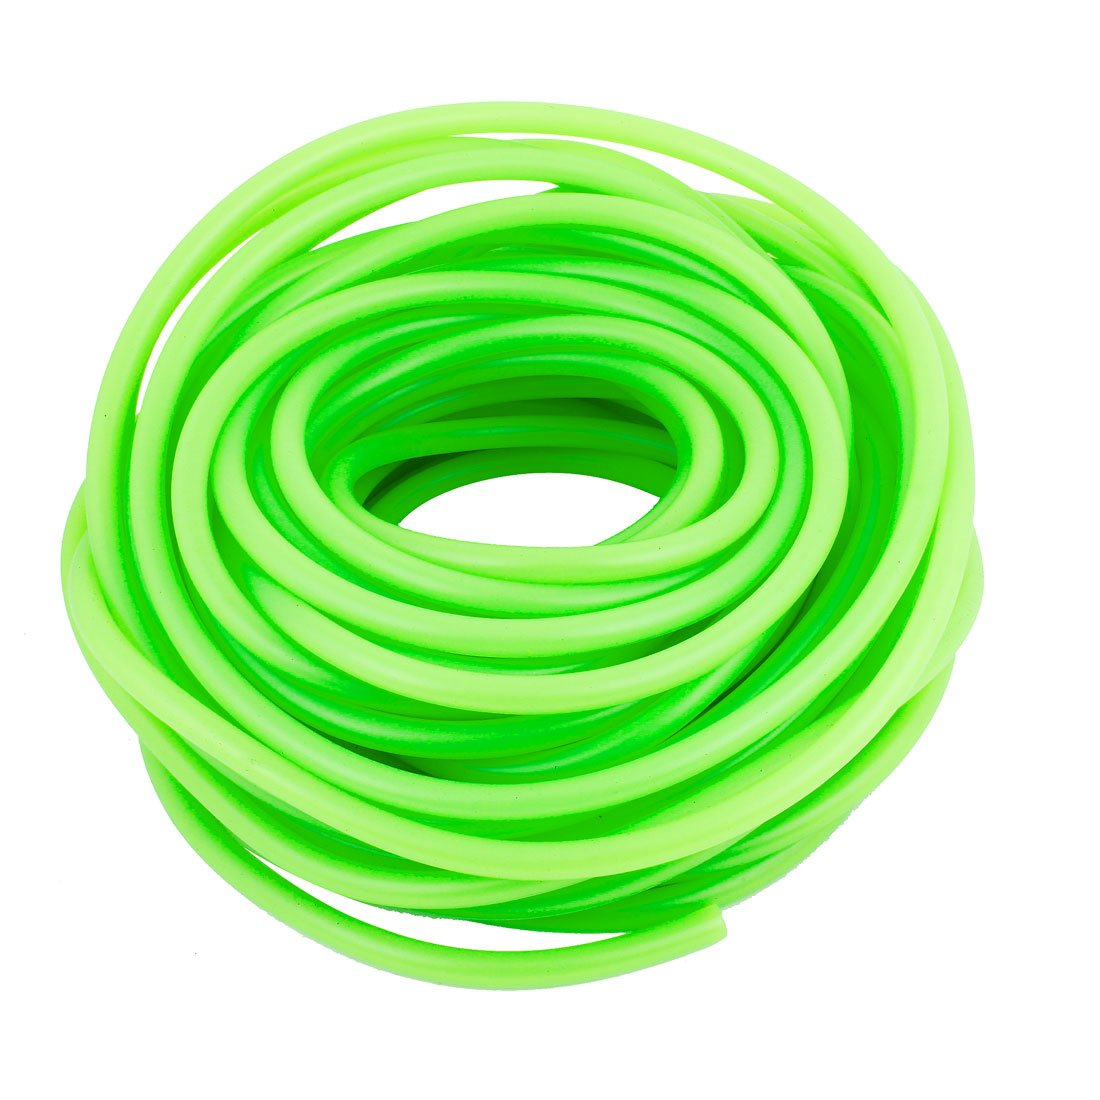 Uxcell a14051300ux0016 52.5ft Long 0.16 ID Green Fuel Line Scooter Boat Jet Ski Gas Lawn Mover Atv Pocket Dirt Bike